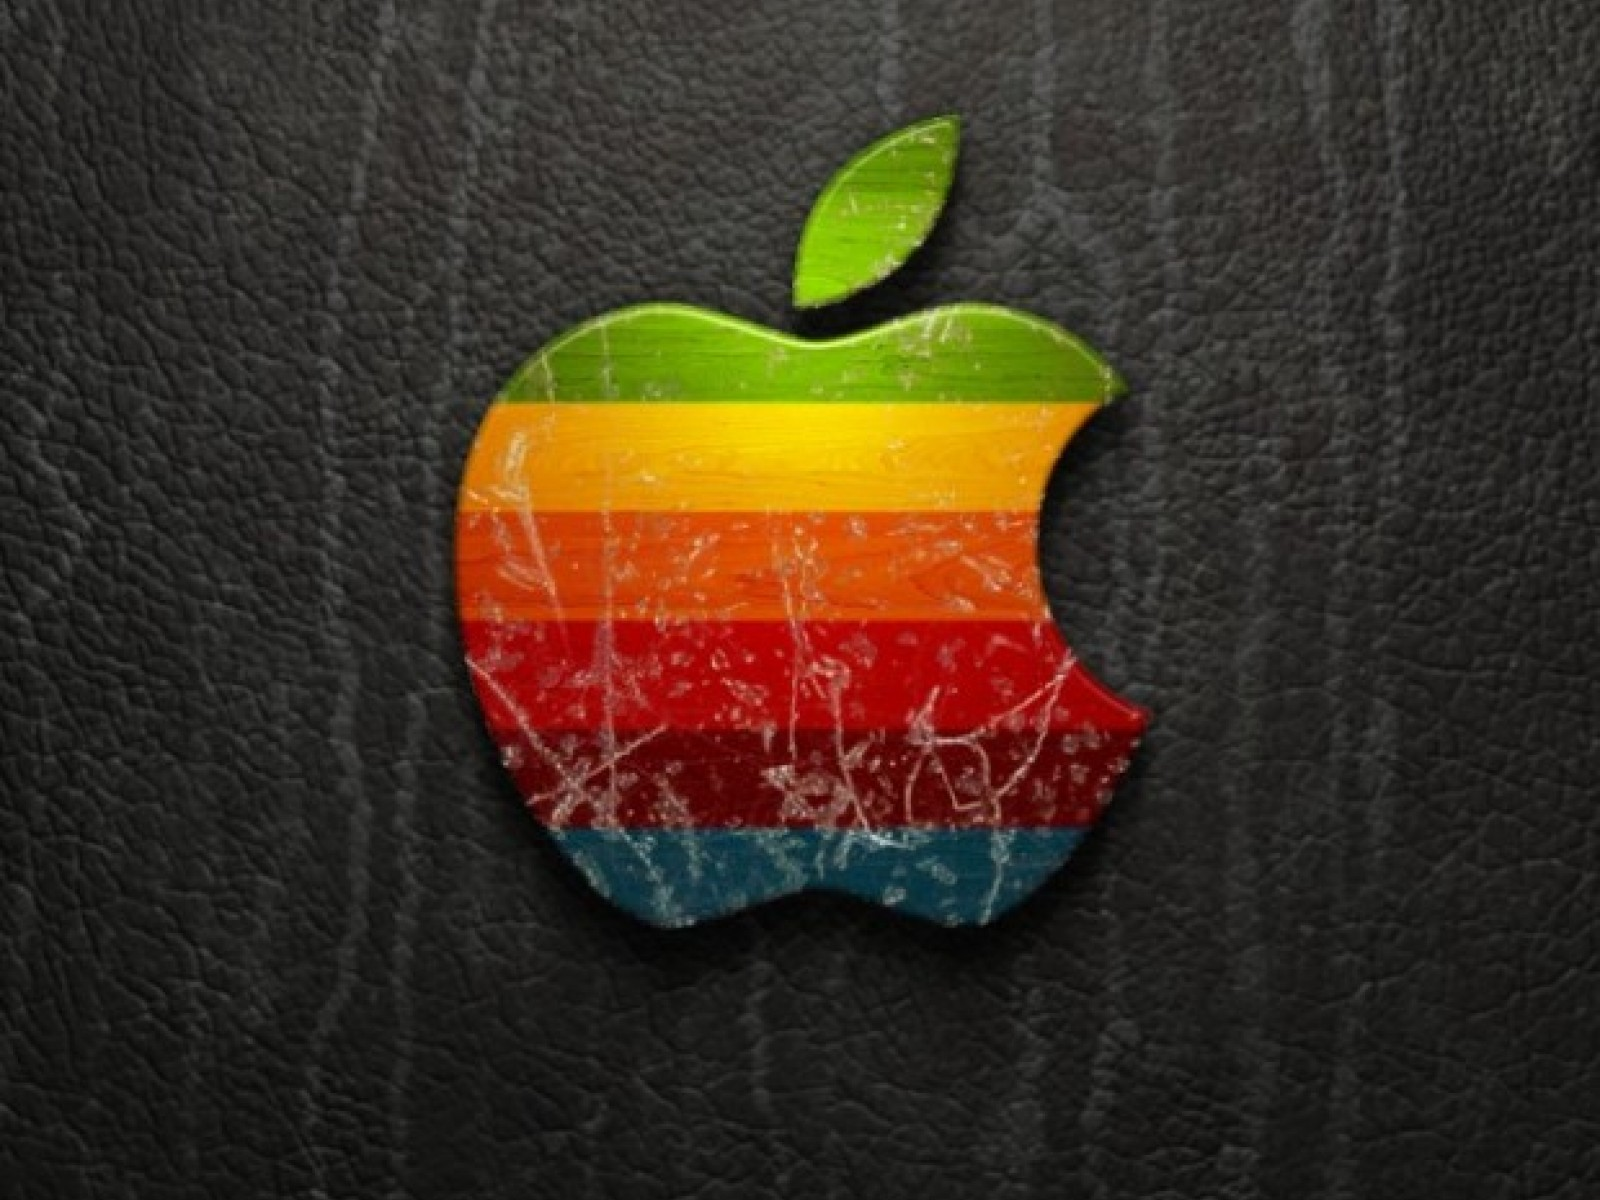 http://3.bp.blogspot.com/-vFnQg-14pgE/T2QnDd9U2aI/AAAAAAAACus/sNK24cjZ0XQ/s1600/apple%20full%20hd%20wallpapers%201.jpg